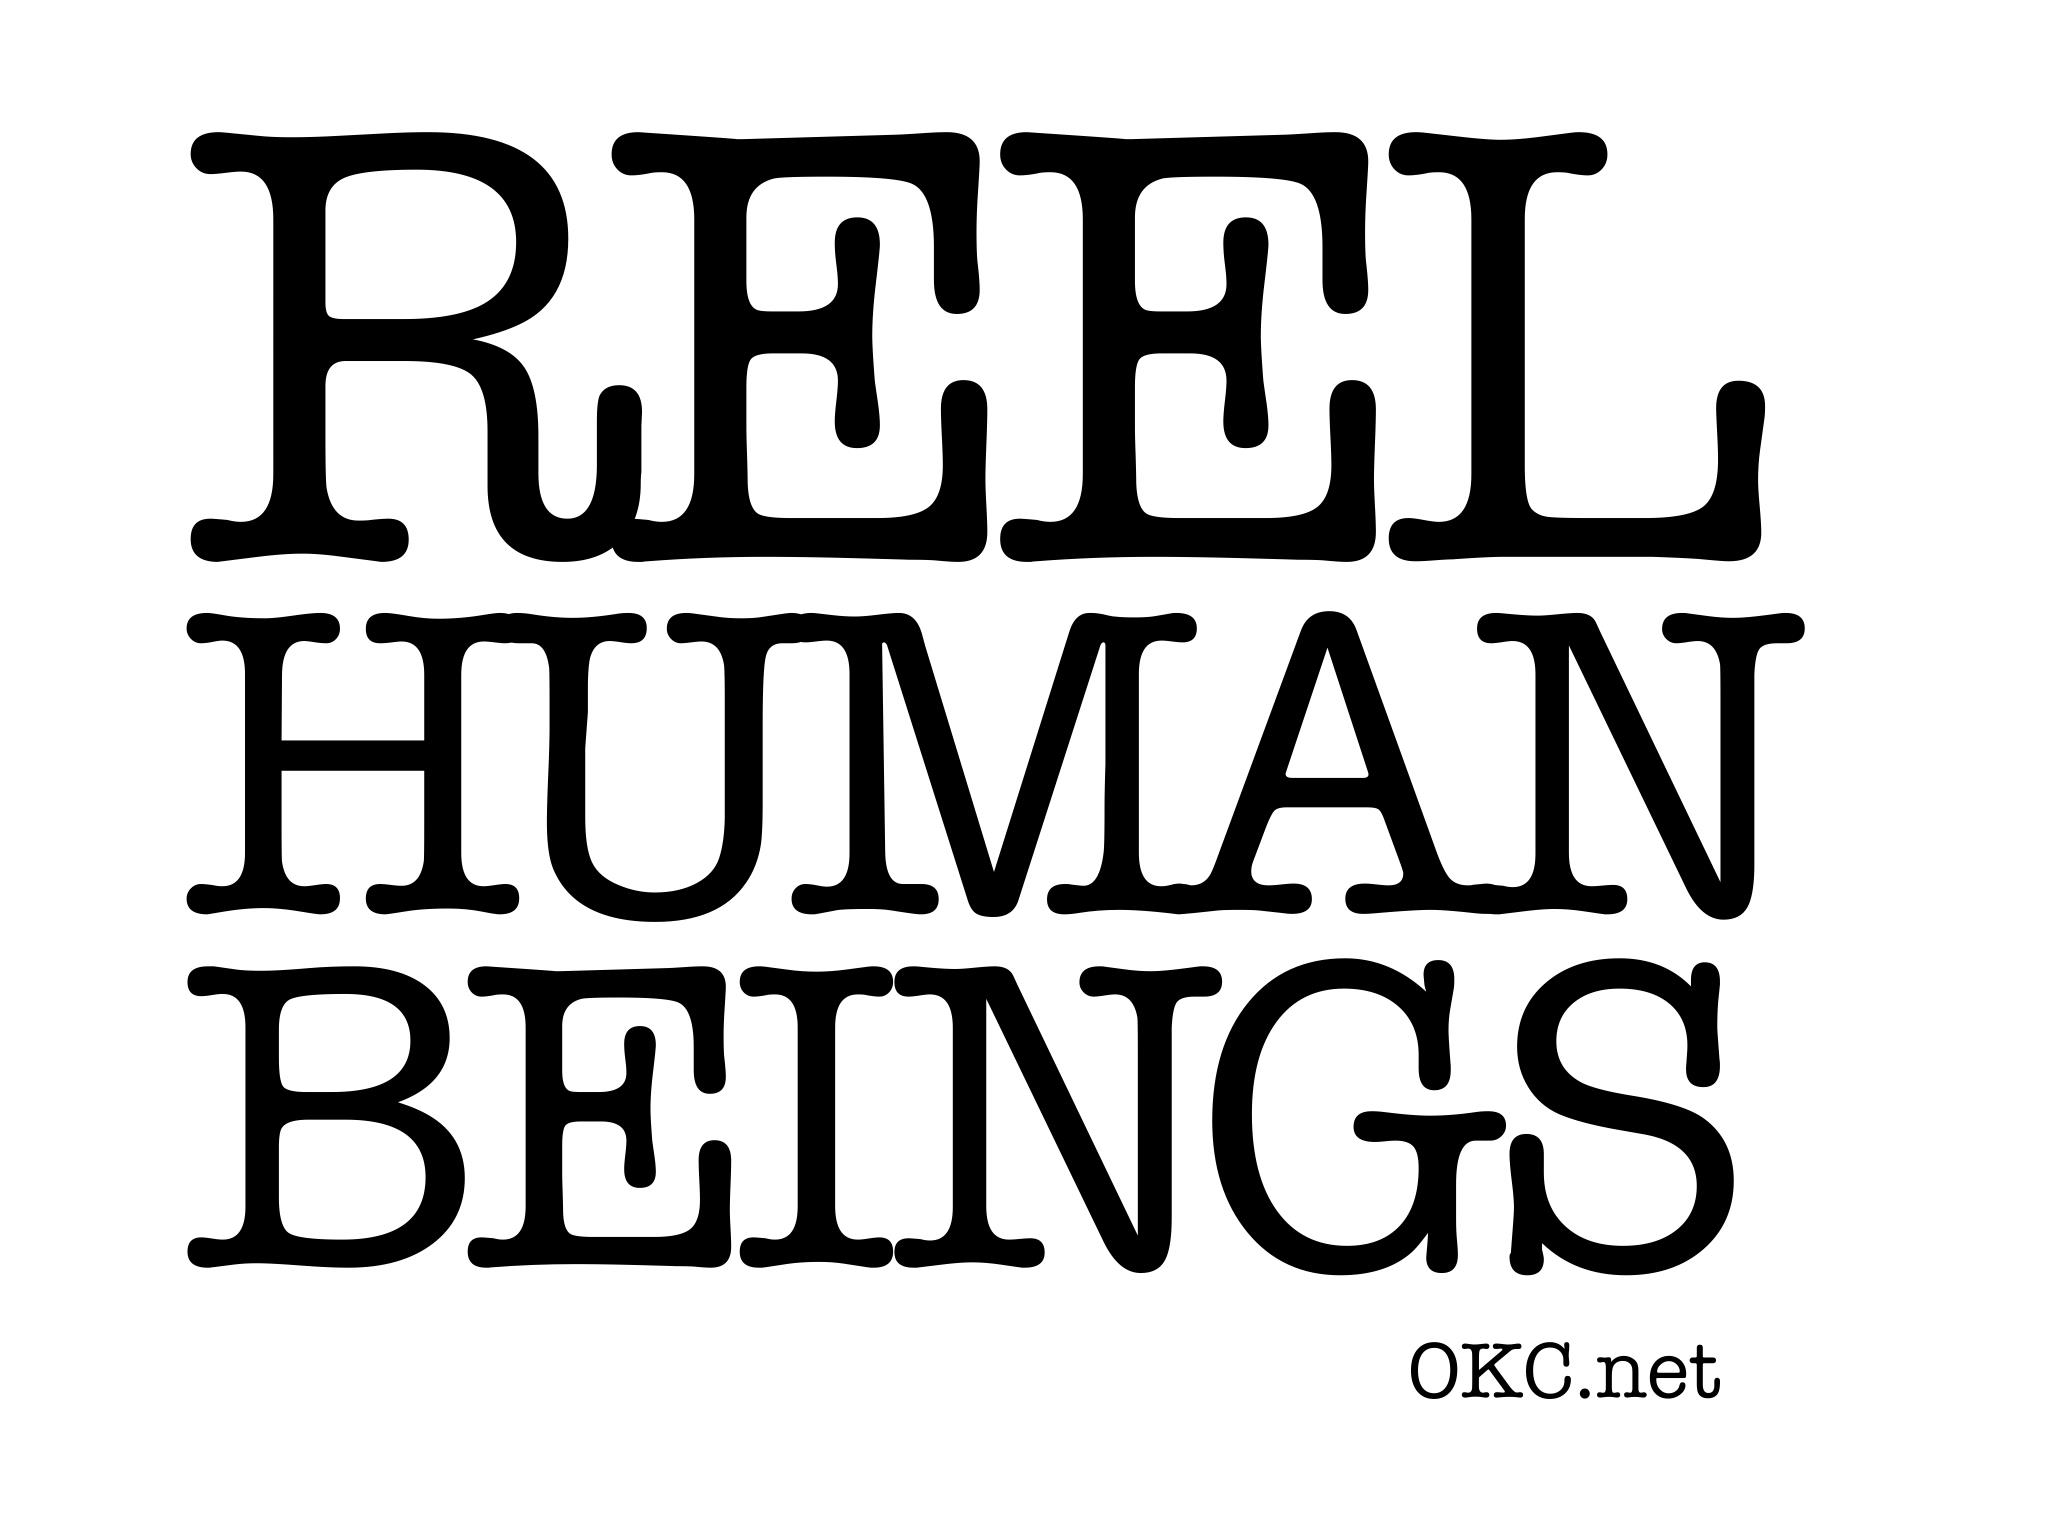 Reel Human Beings